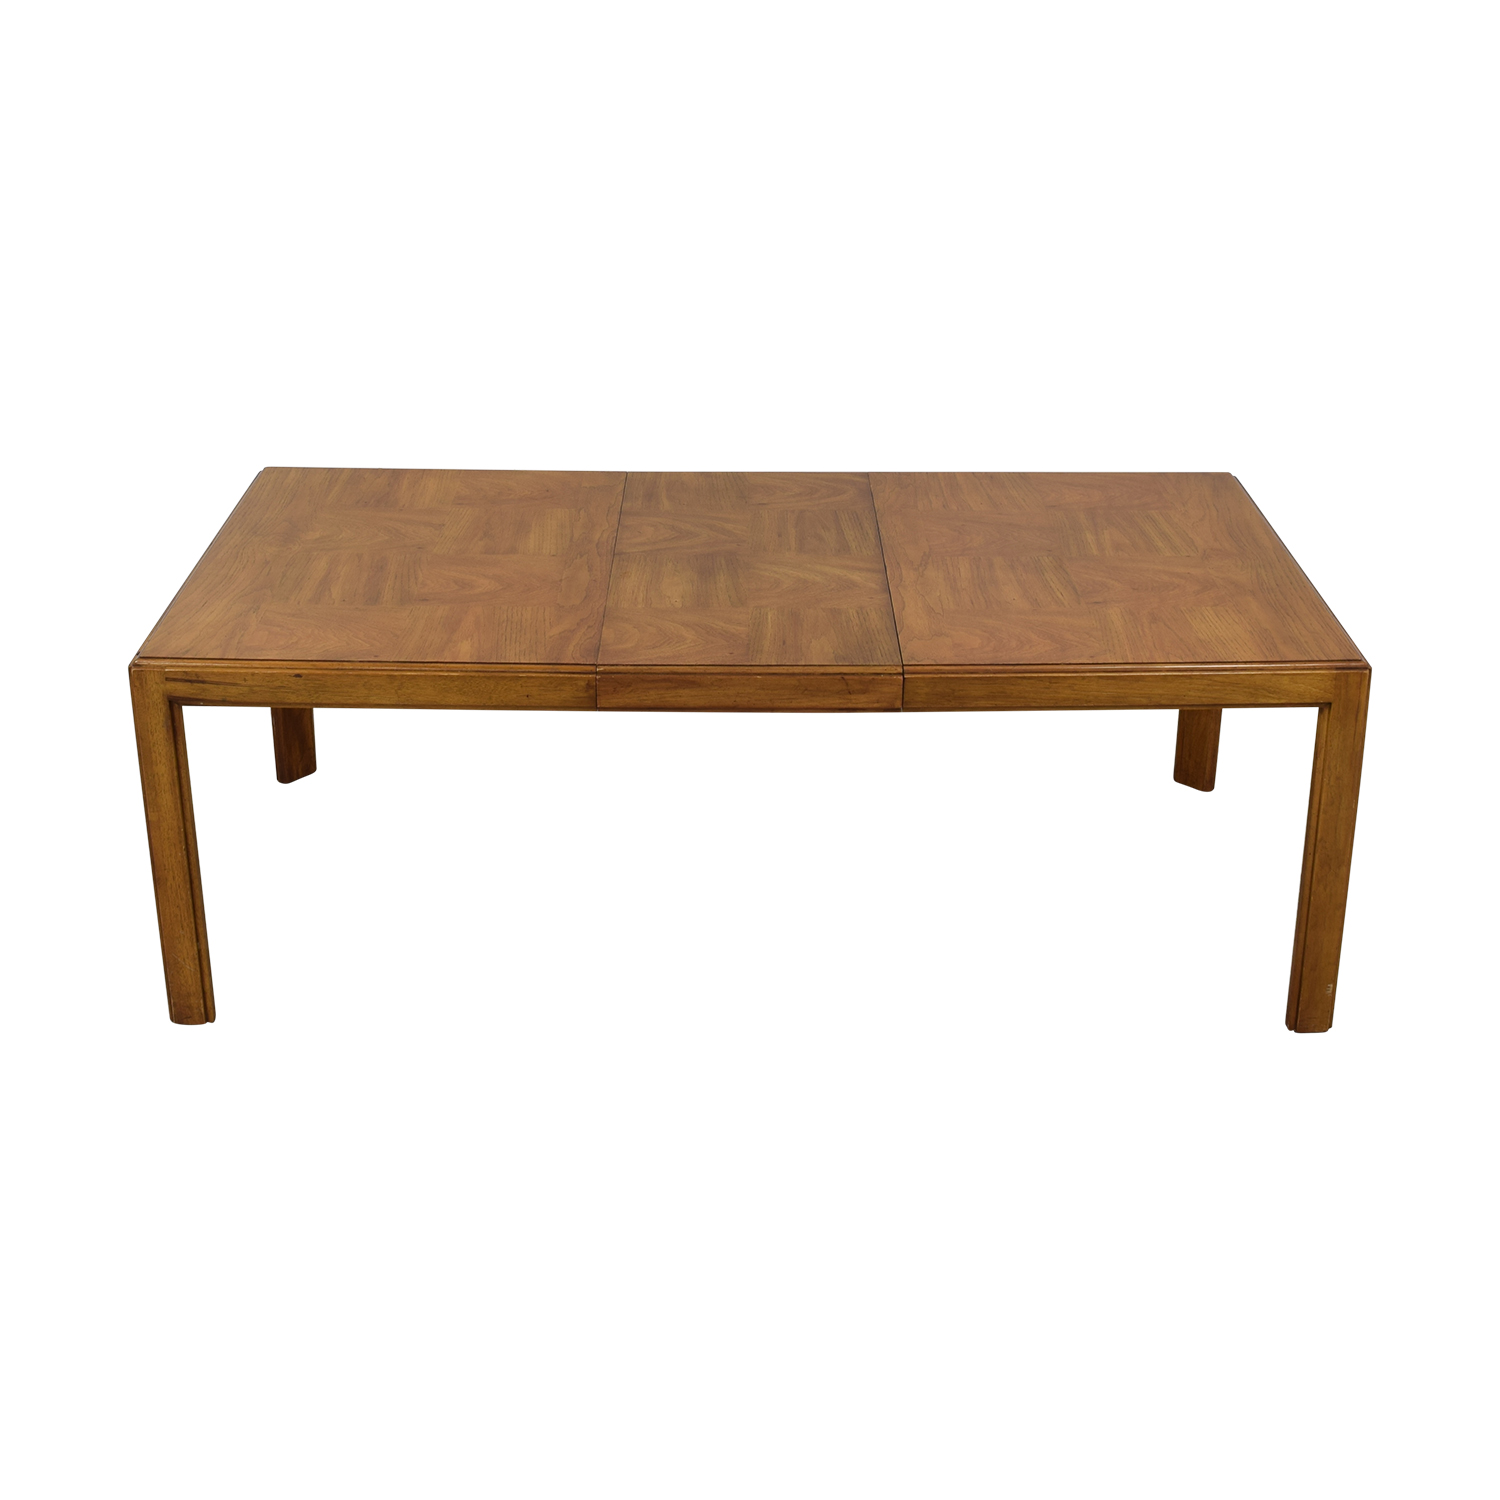 81% OFF - Drexel Heritage Drexel Heritage Dining Table / Tables